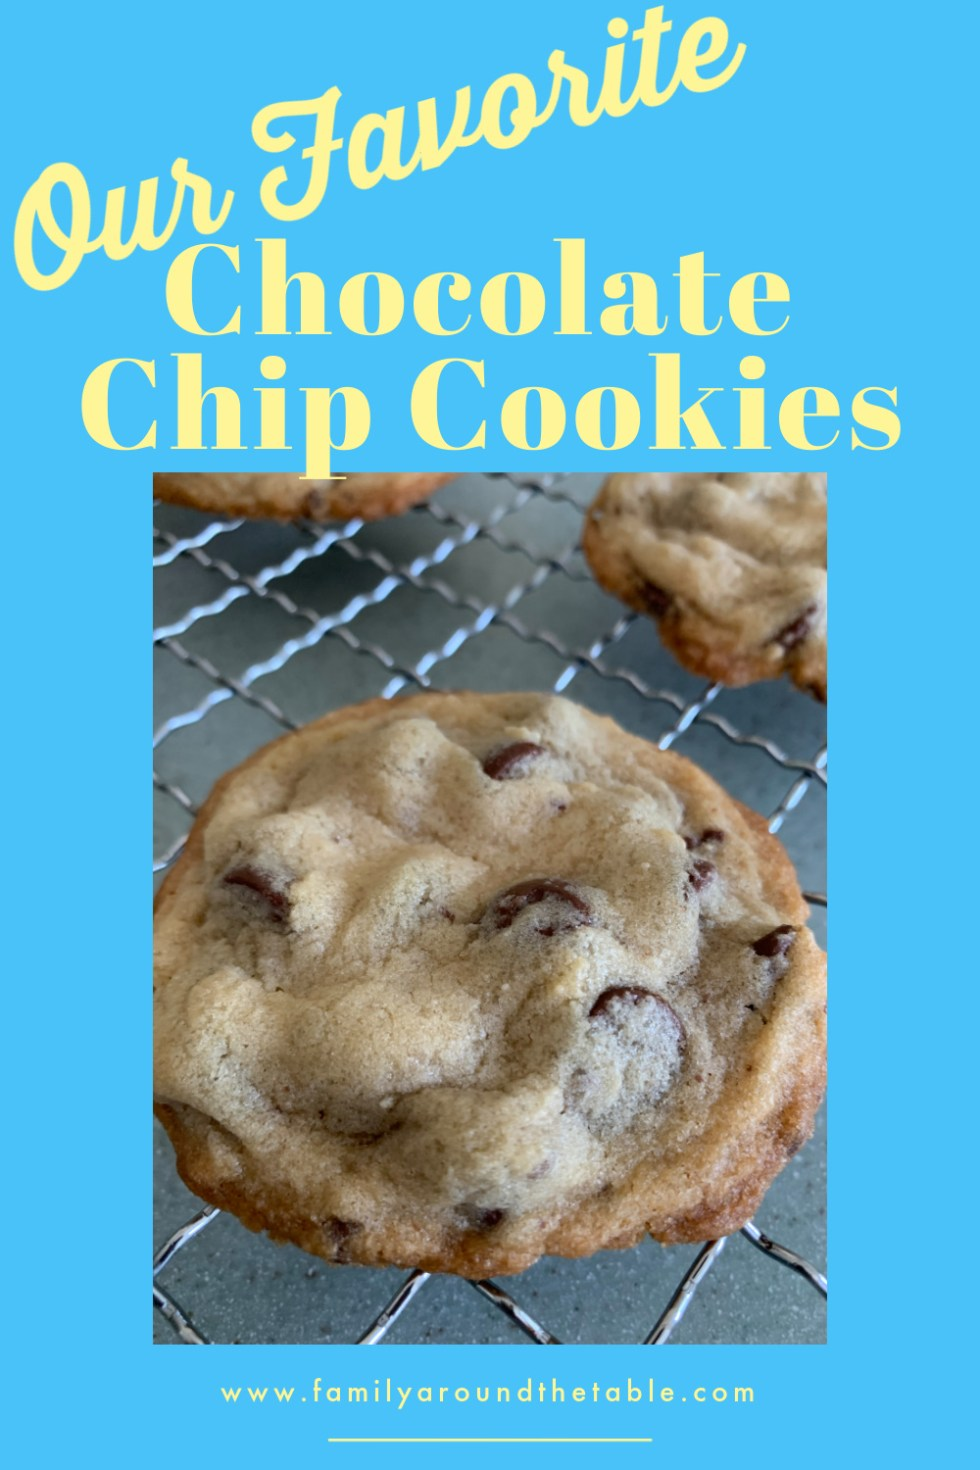 Chocolate Chip Cookies Pinterest Image